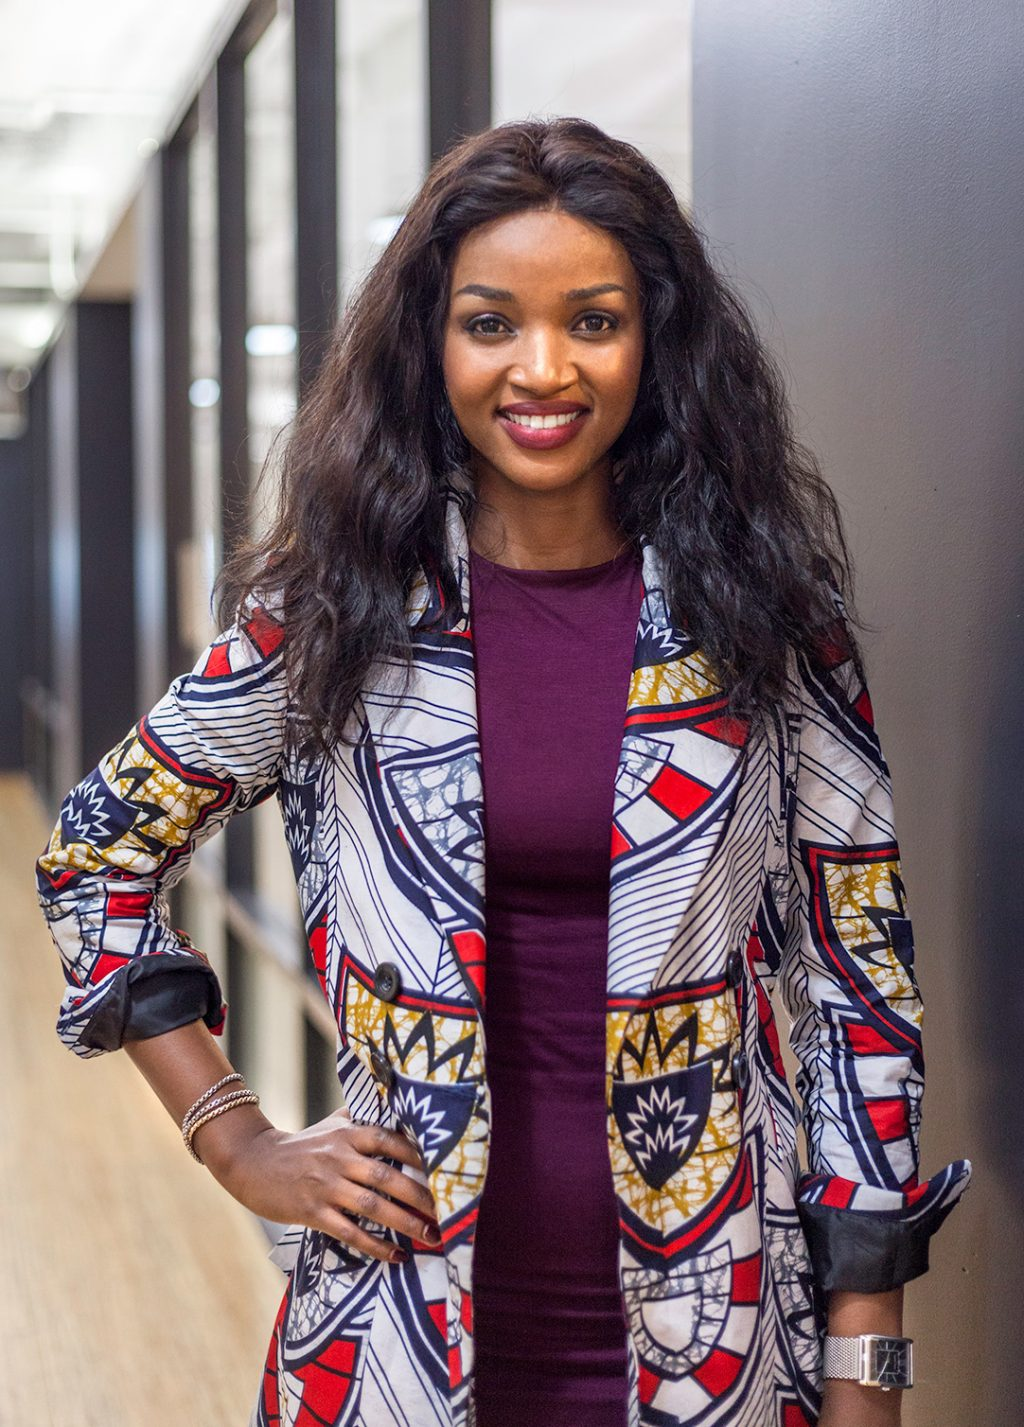 Interview With A Professional Idrine Bishweka Fashion Designer In The Loop